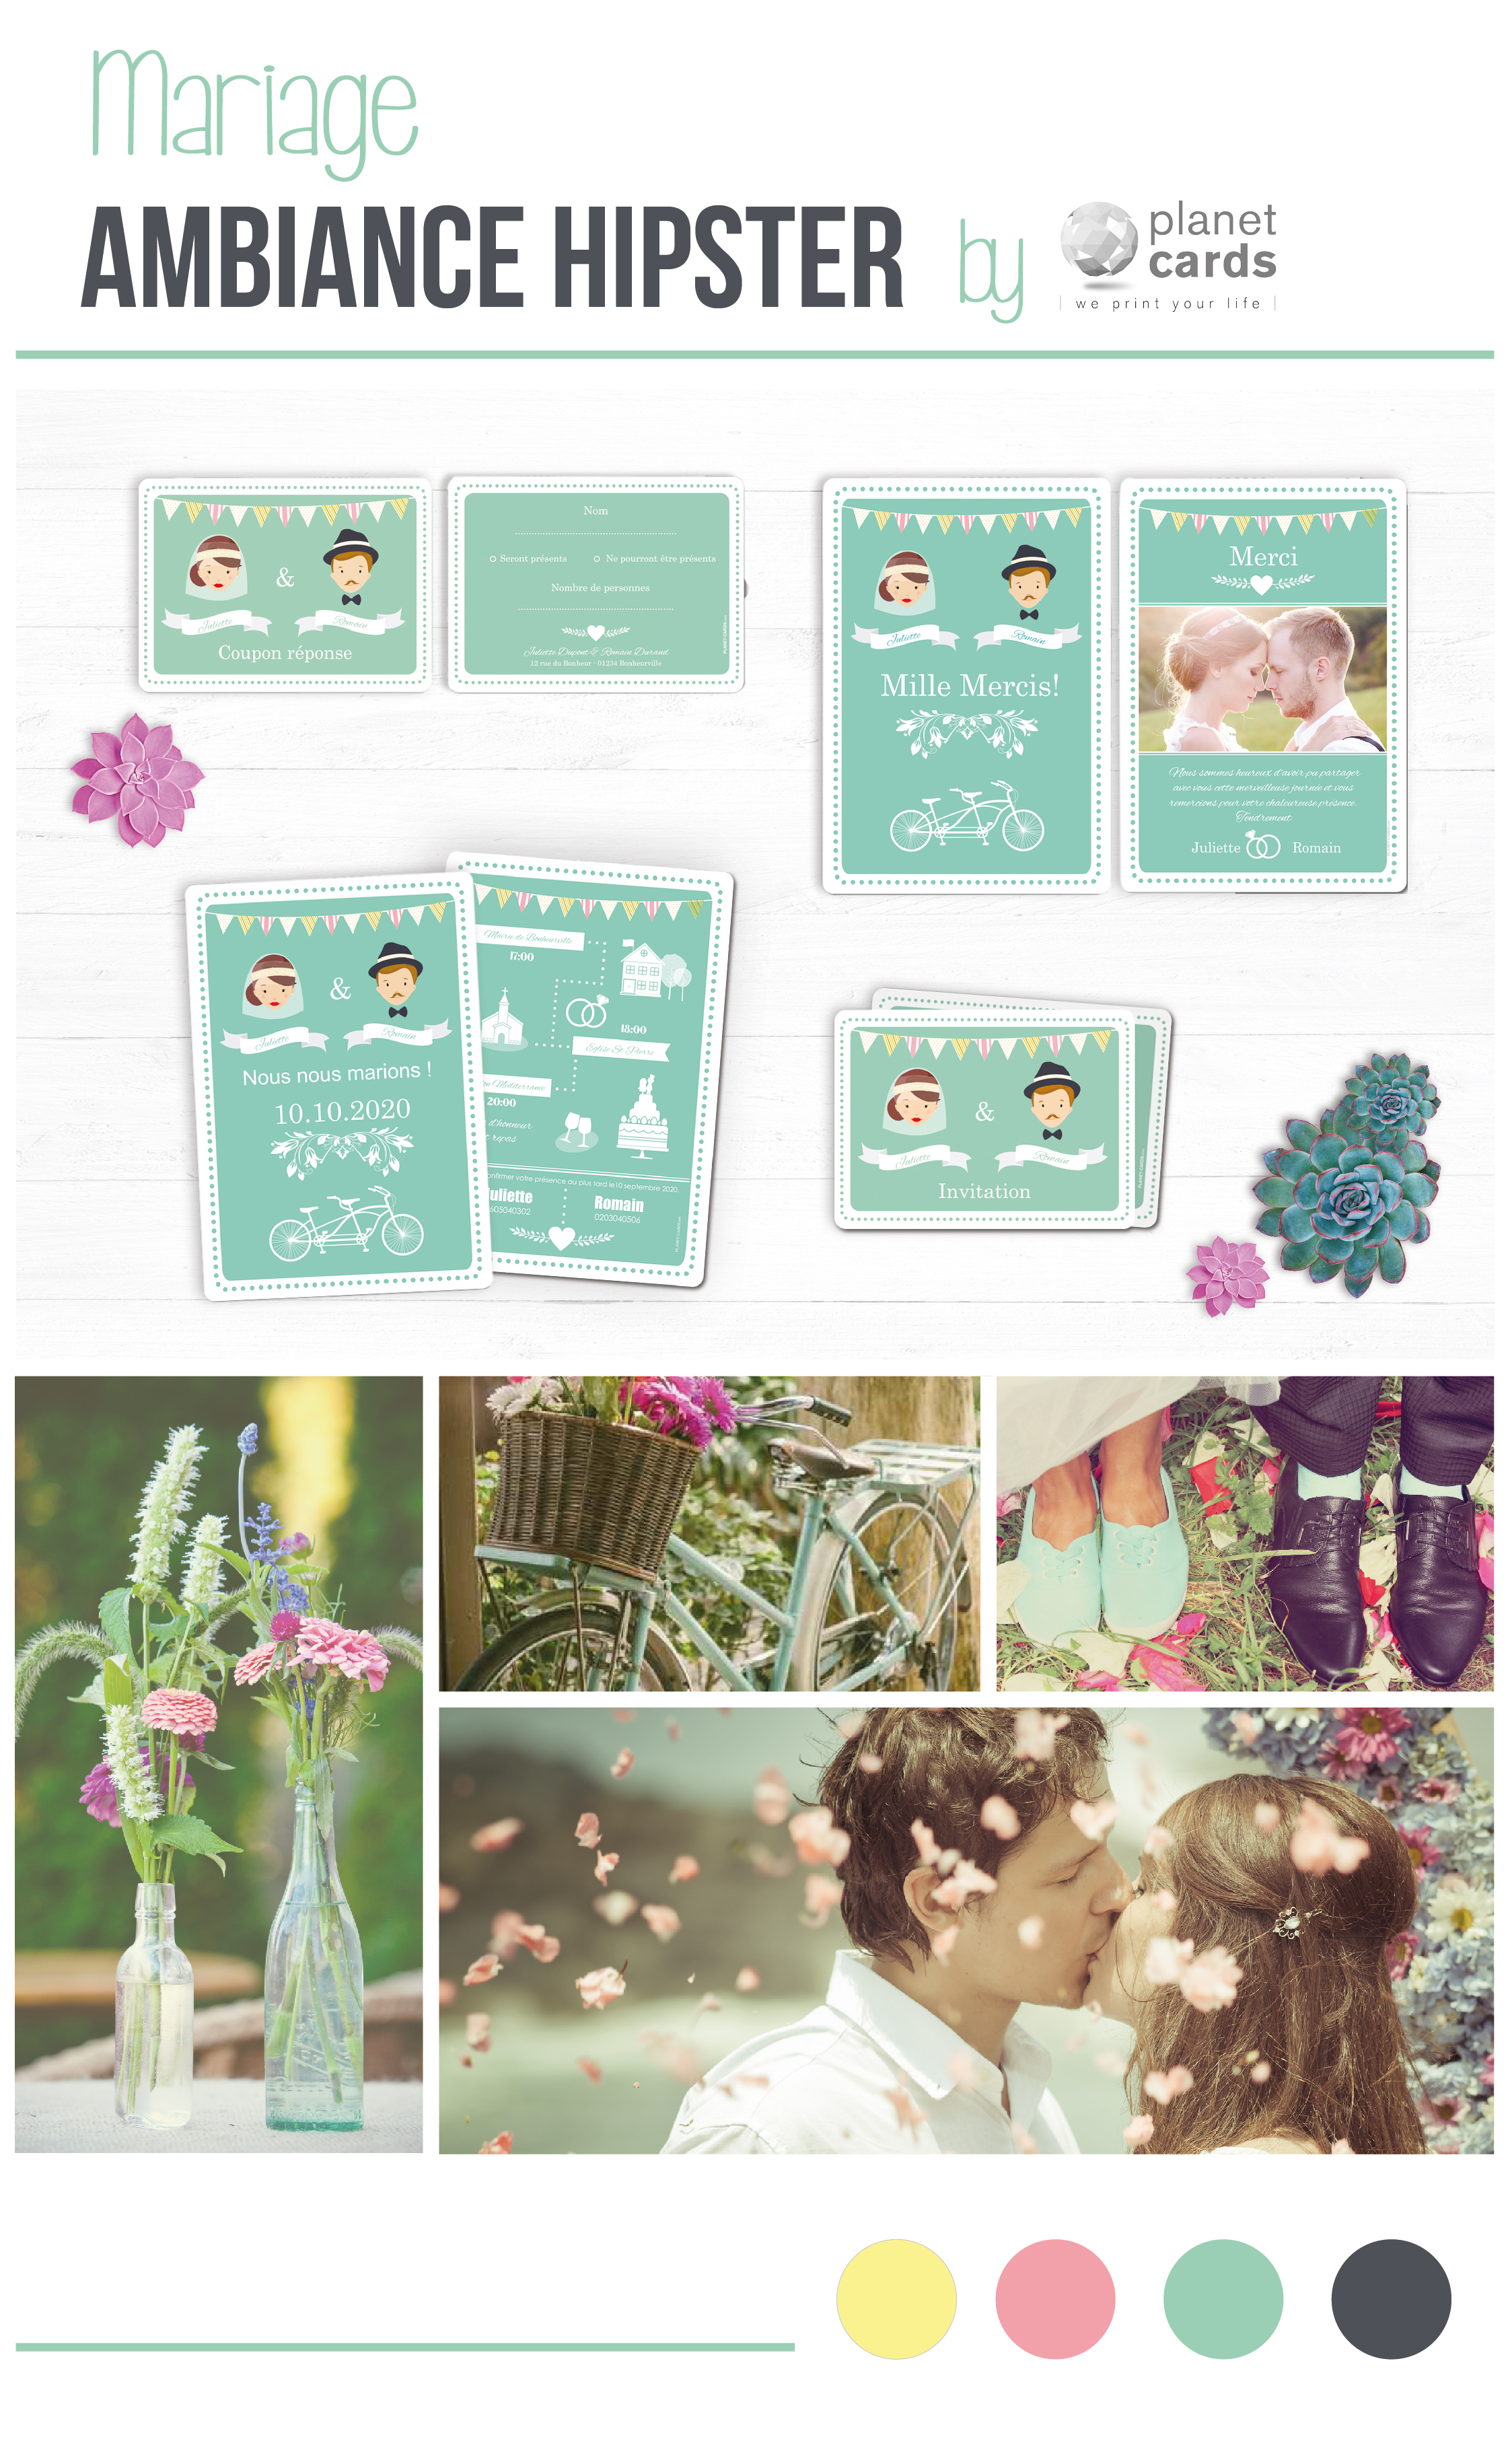 Mariage hipster Planet cards